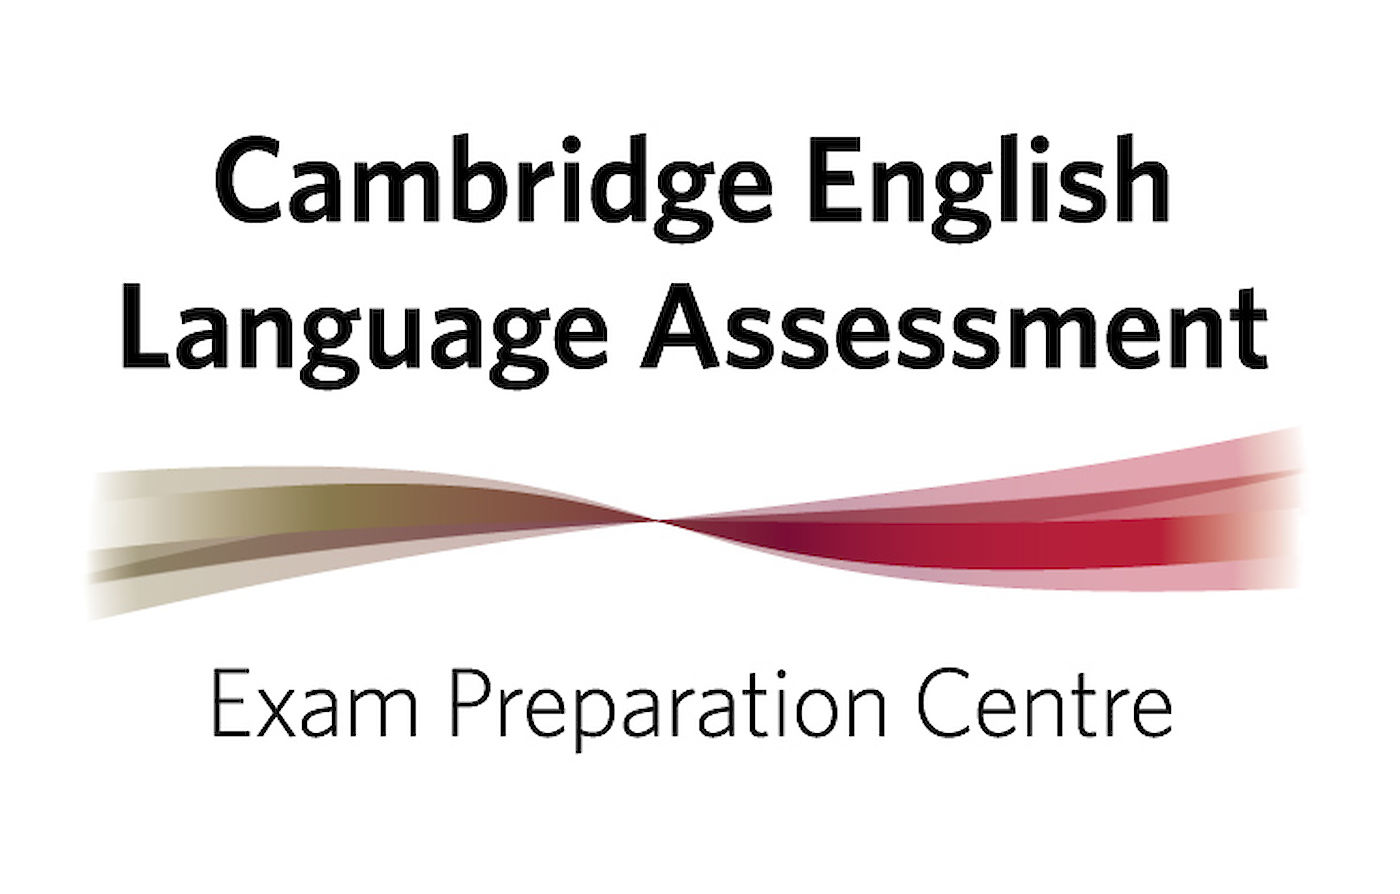 KTS Cambridge Exam Preparation Centre